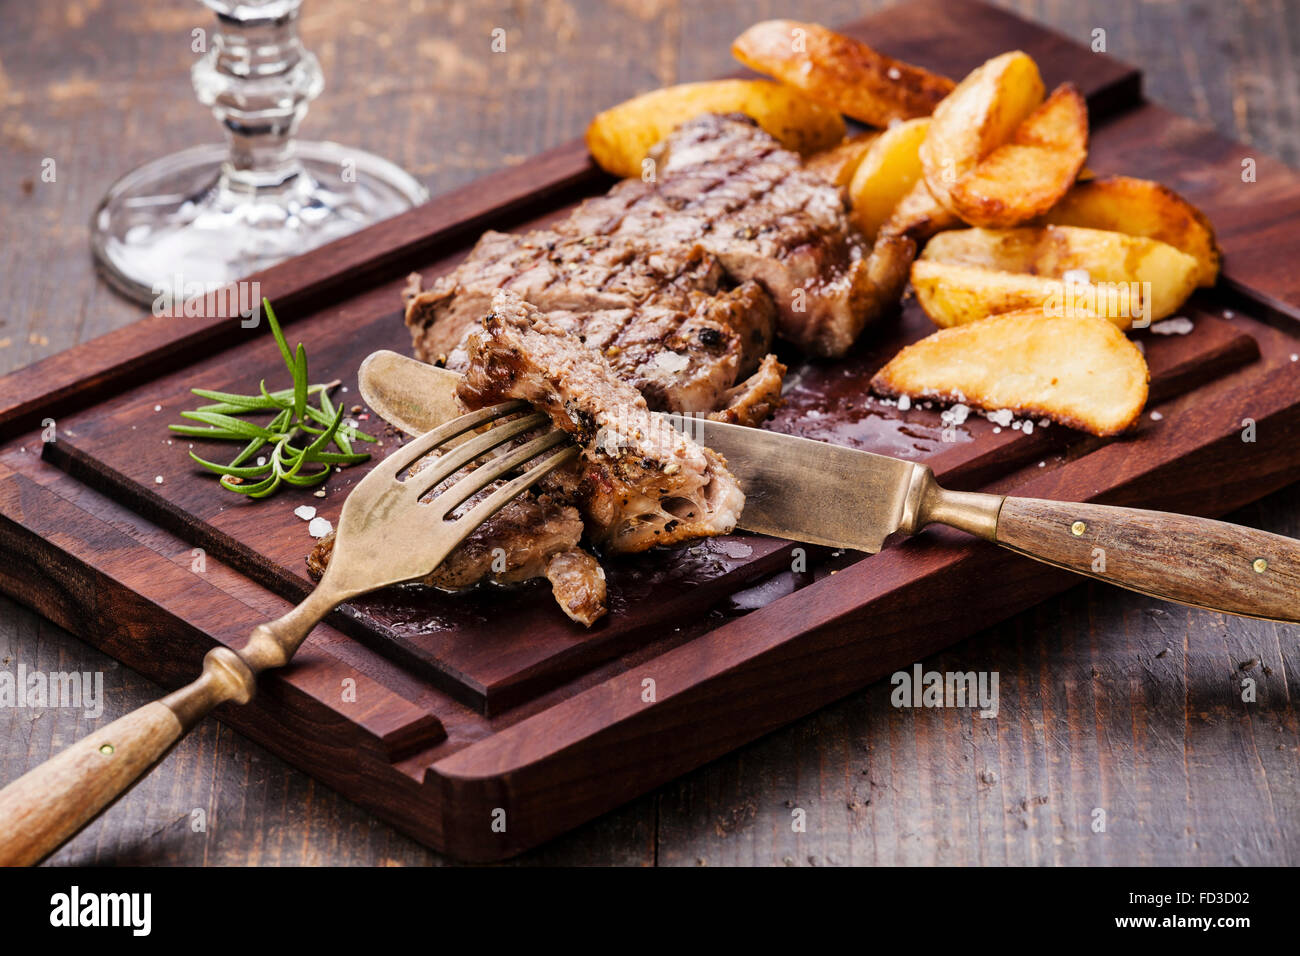 Sliced well done grilled New York steak with roasted potato wedges on cutting board on wooden background - Stock Image